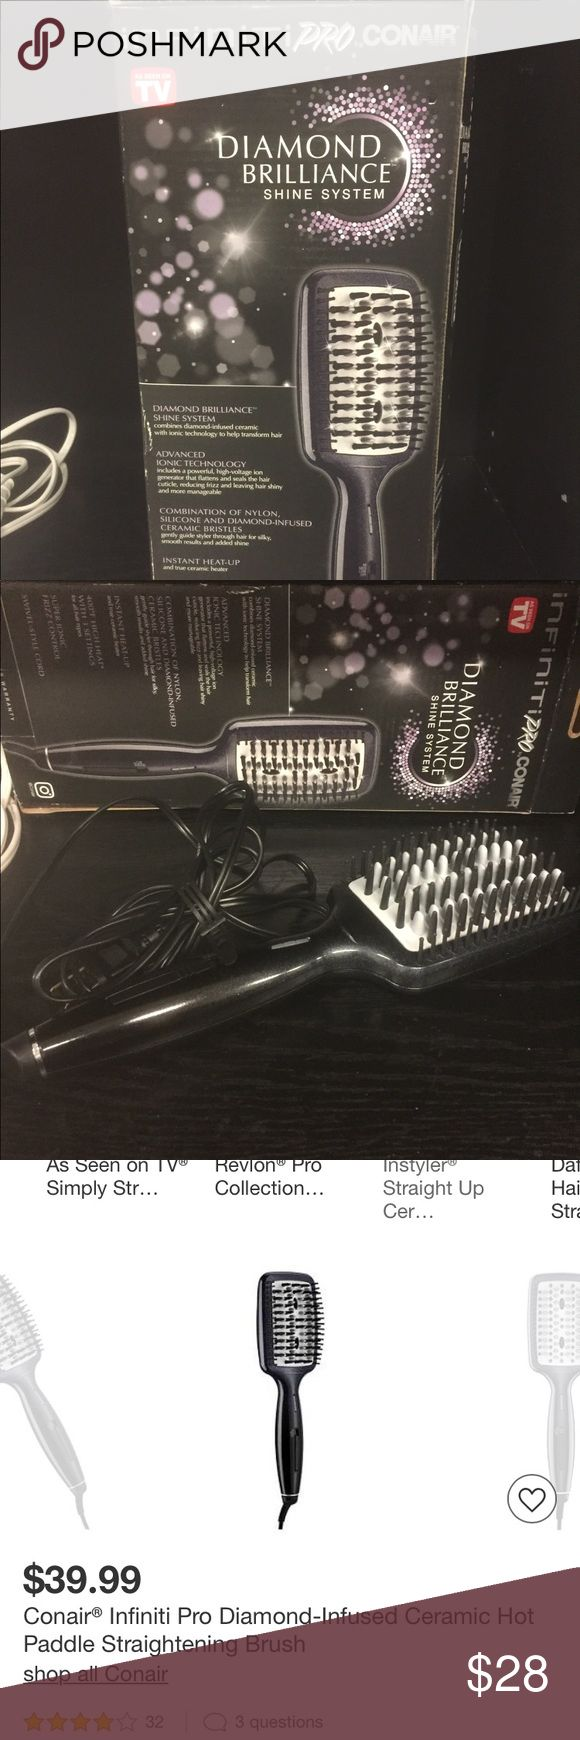 NEW conair diamond brilliance straightening brush Item is in new unused condition. We own a liquidation company & we do check for quality & condition before listing. The box may show signs of damage due to storage & shipping however item was not damaged.  • Nylon, silicone & ceramic bristles • 400 ºF high heat  • 3 heat settings • 30 sec heat up • Swivel cord The Infiniti Pro by Conair Diamond-Infused Ceramic Hot Paddle Straightening Brush delivers shiny, straight, smooth results to all hair…